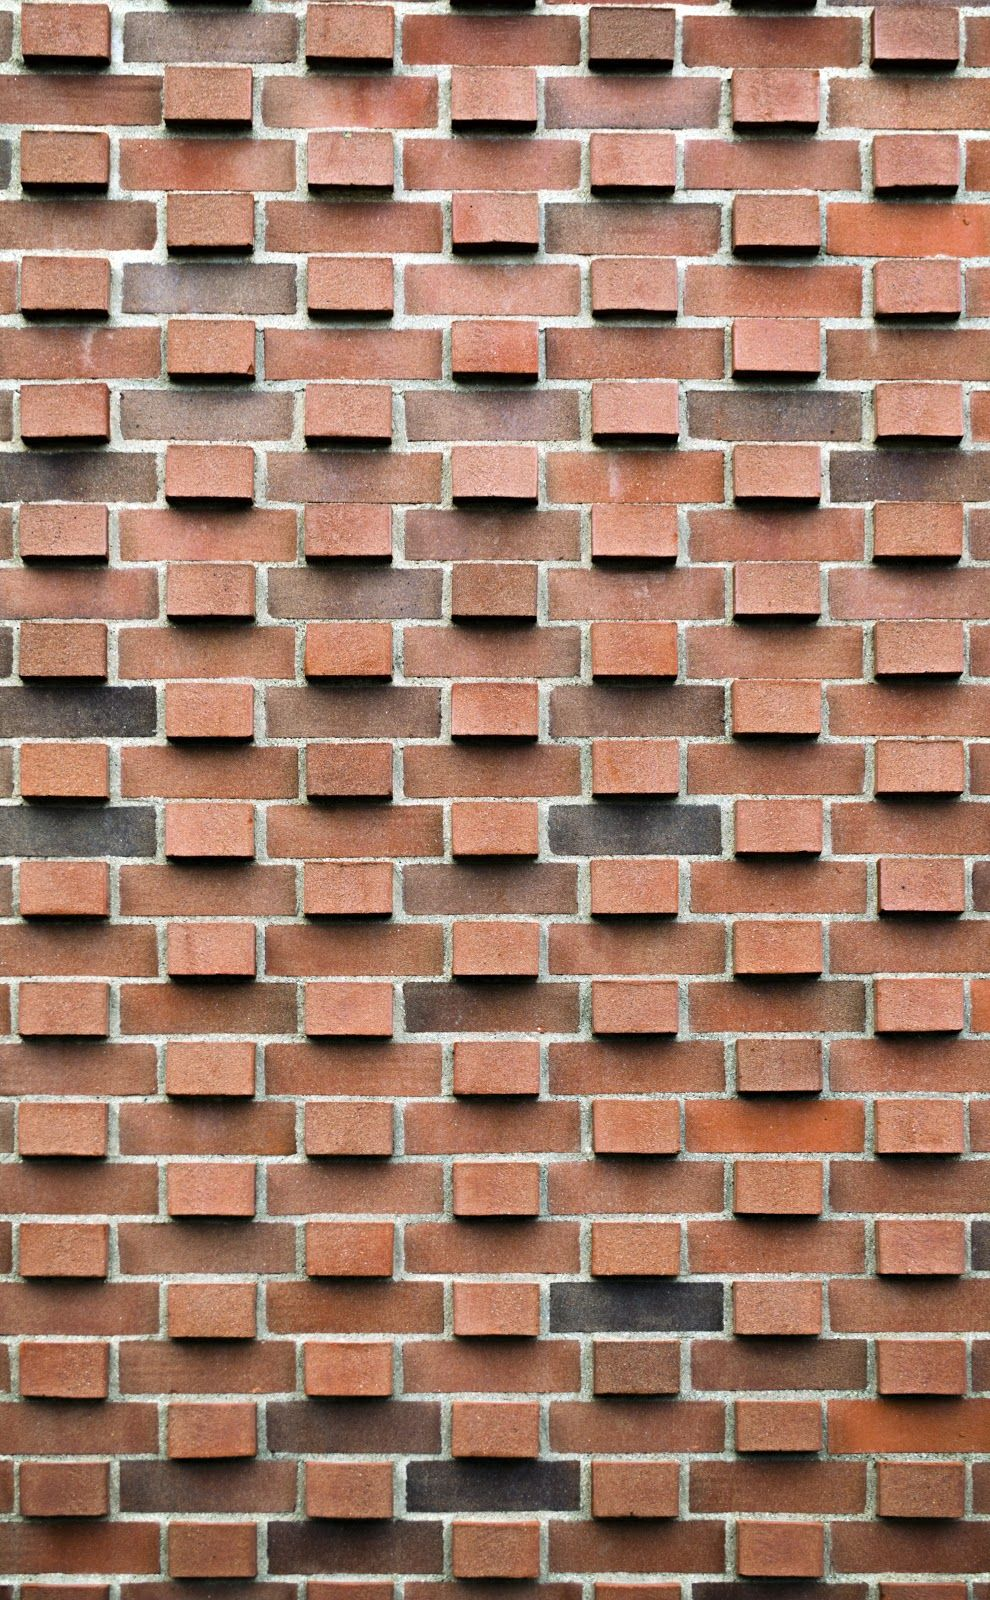 Brick Pattern Brick Detail Brick Patterns Brick Texture